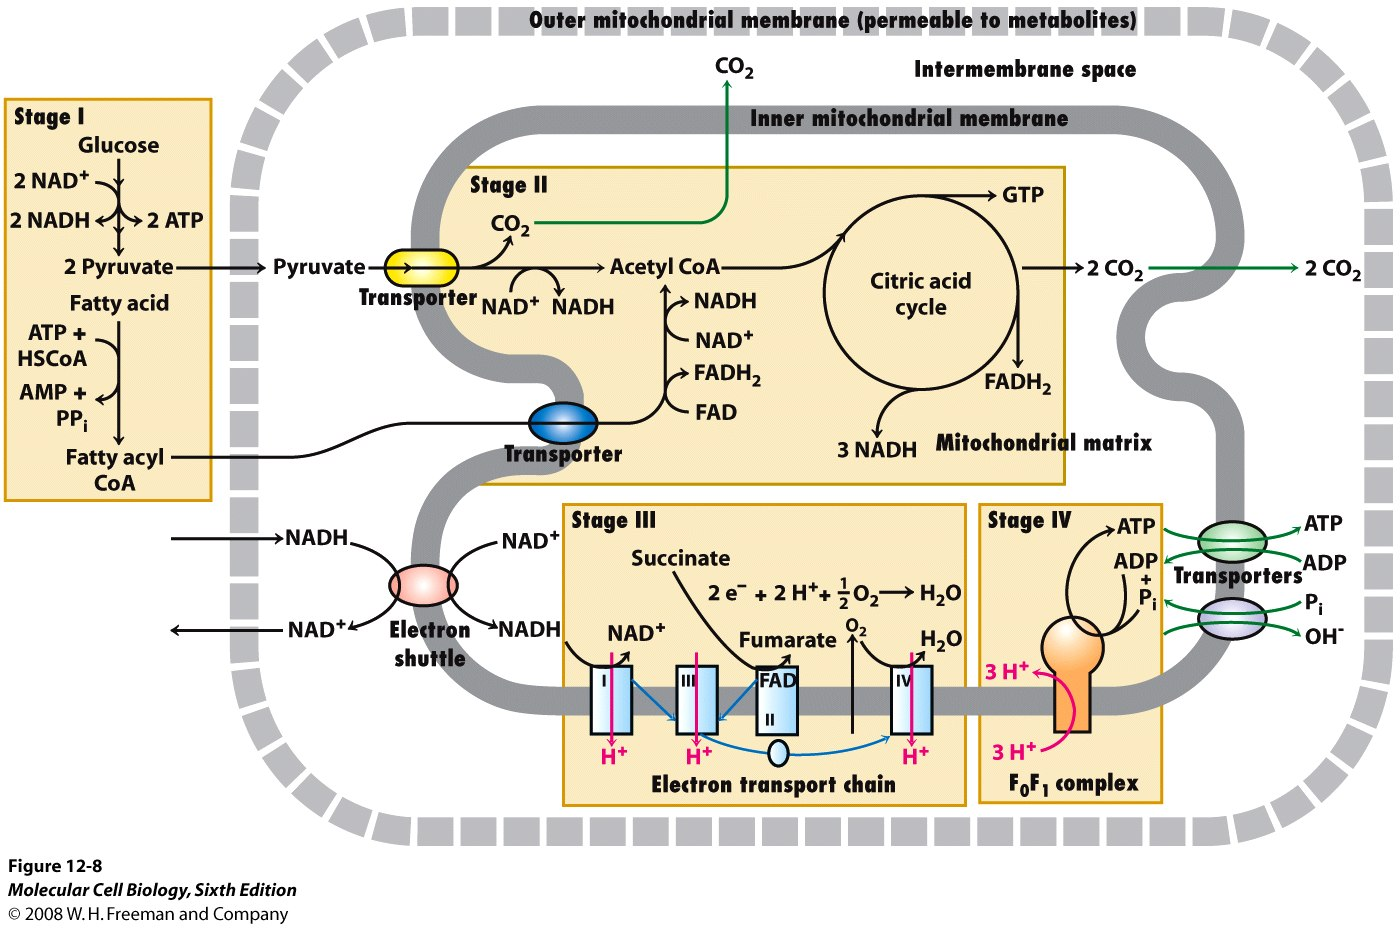 draw and label a mitochondria surrounded by cytoplasm indicate where glycol s the krebs cycle and th Movement of mitochondrial oaa to the cytoplasm to maintain this cycle requires it be transaminated to aspartate (asp, d) with the amino group being donated by glutamate (glu, e) the asp then leaves the mitochondria and enters the cytoplasm.